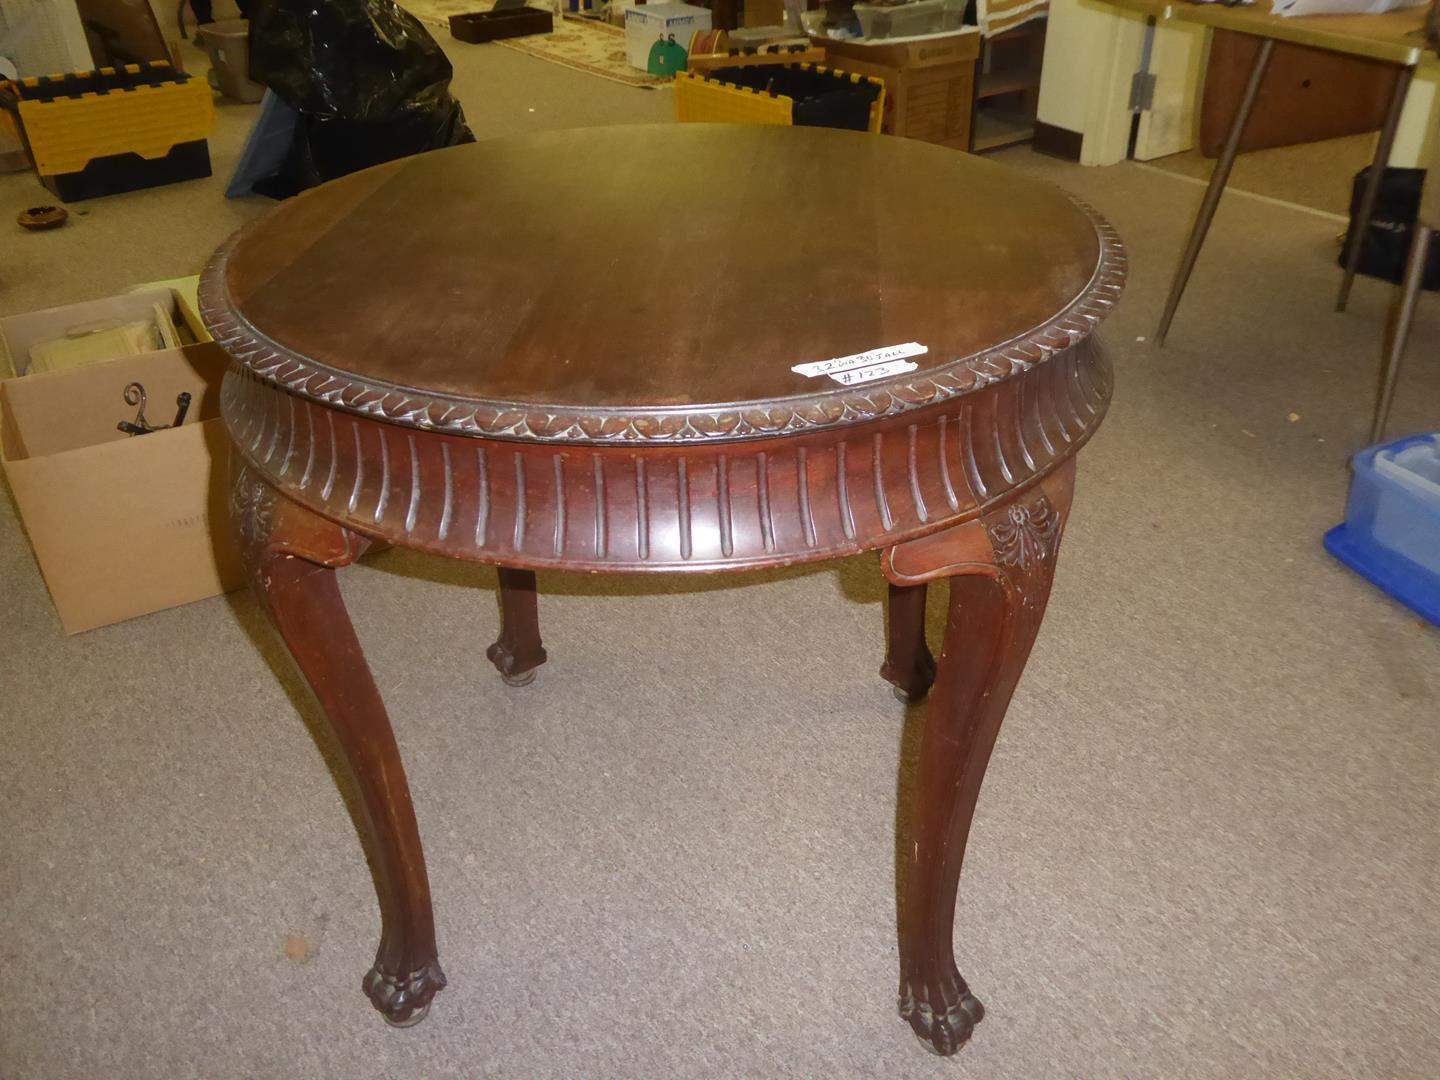 Lot # 123 - Vintage Wooden Round Claw Foot End Table (main image)